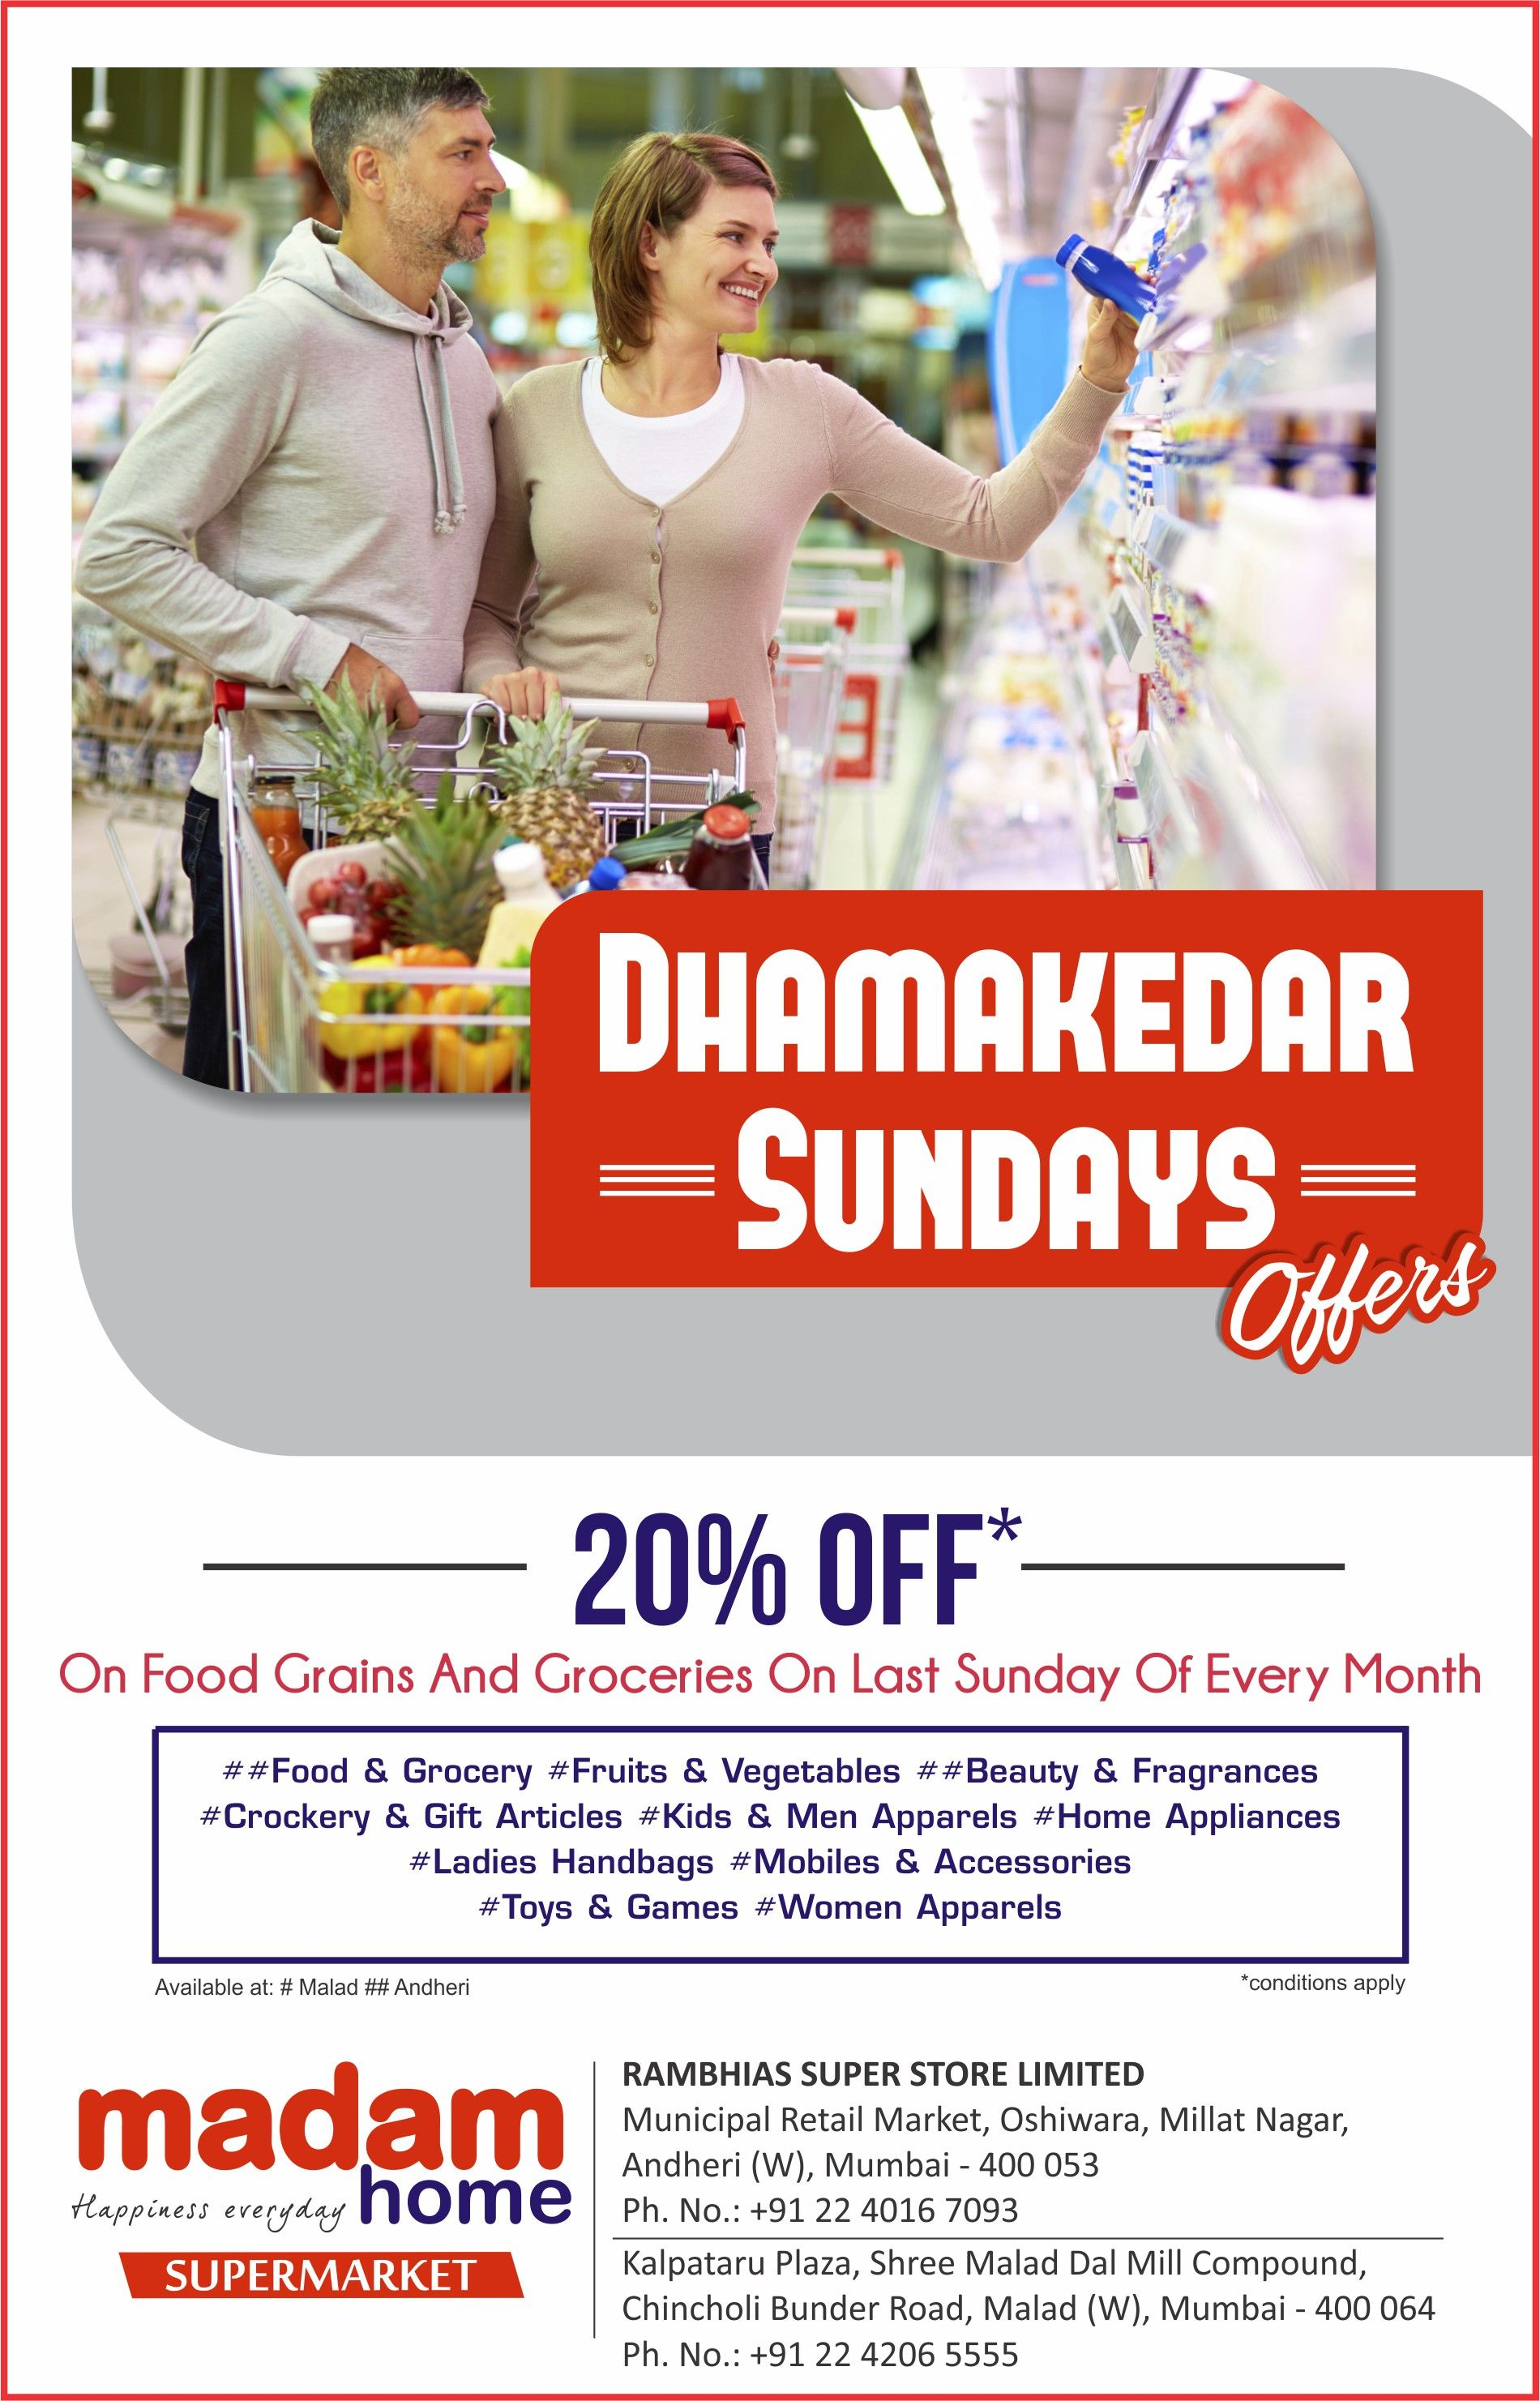 #Shopping Is Always A Good Idea at #MadamHome .Visit our #Stores At #Malad & #Andheri On Every Last #Sunday Of Every Month To Avail 20% #Discount On All #Grossary . For More Details #Contact our Stores at +91 22 4206 5555.